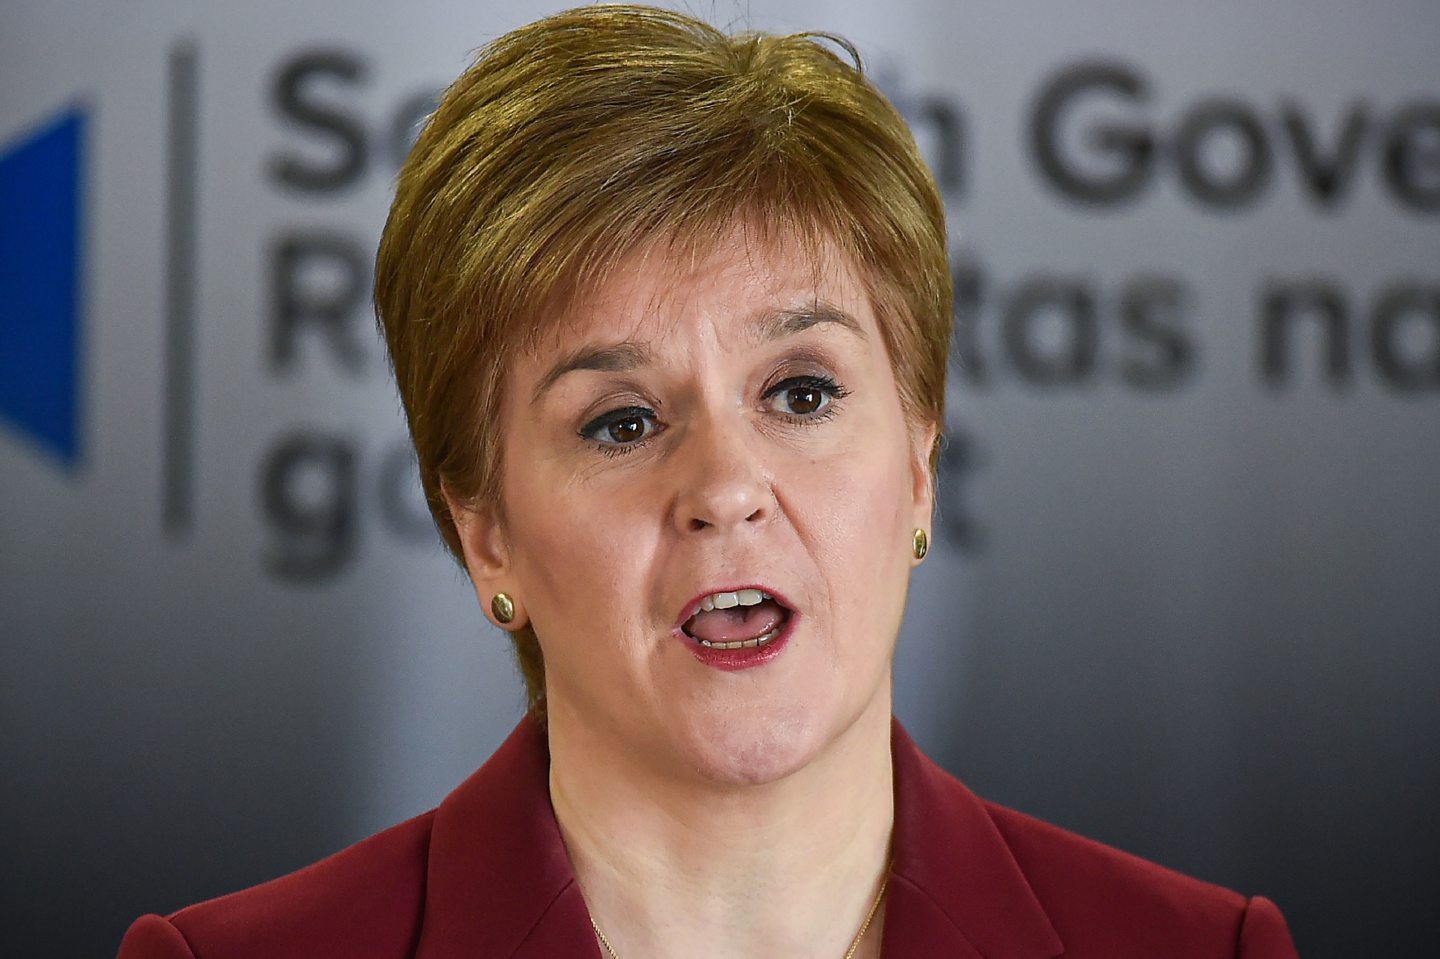 Nicola Sturgeon says she is now satisfied that Scotland was not being disadvantaged.